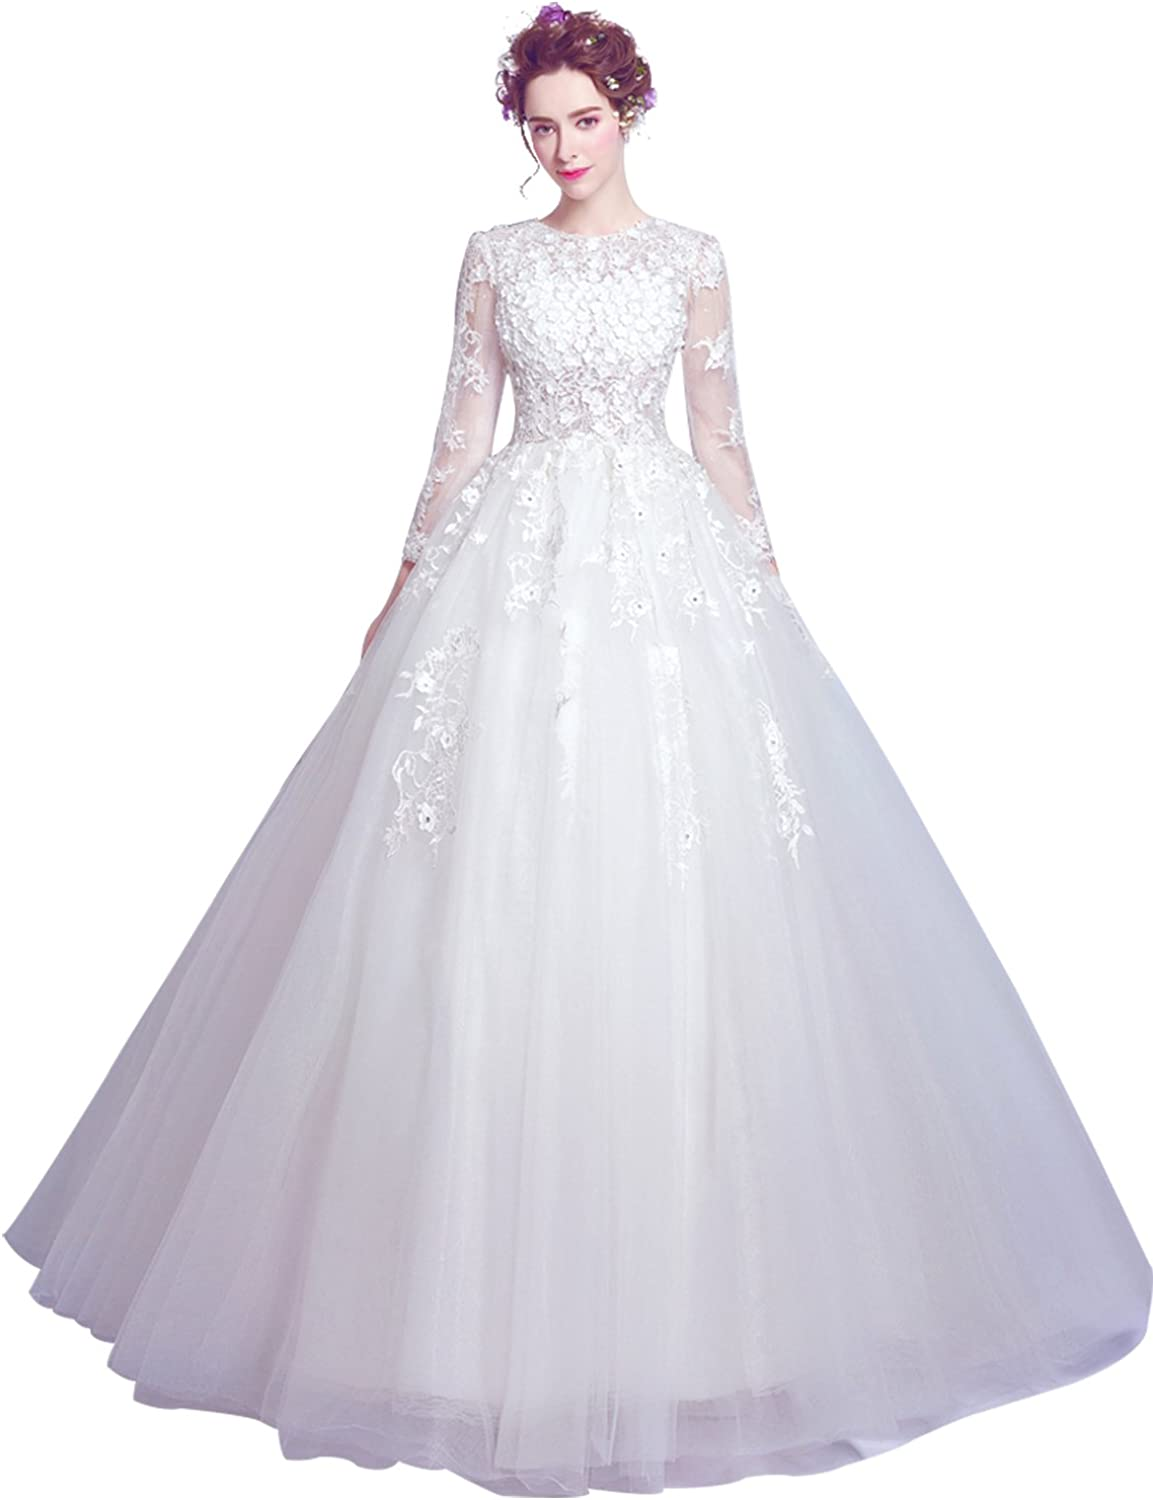 Epinkbridal Ball Gown Wedding Dress With Long Sleeve Lace s Vintage Bridal Gowns